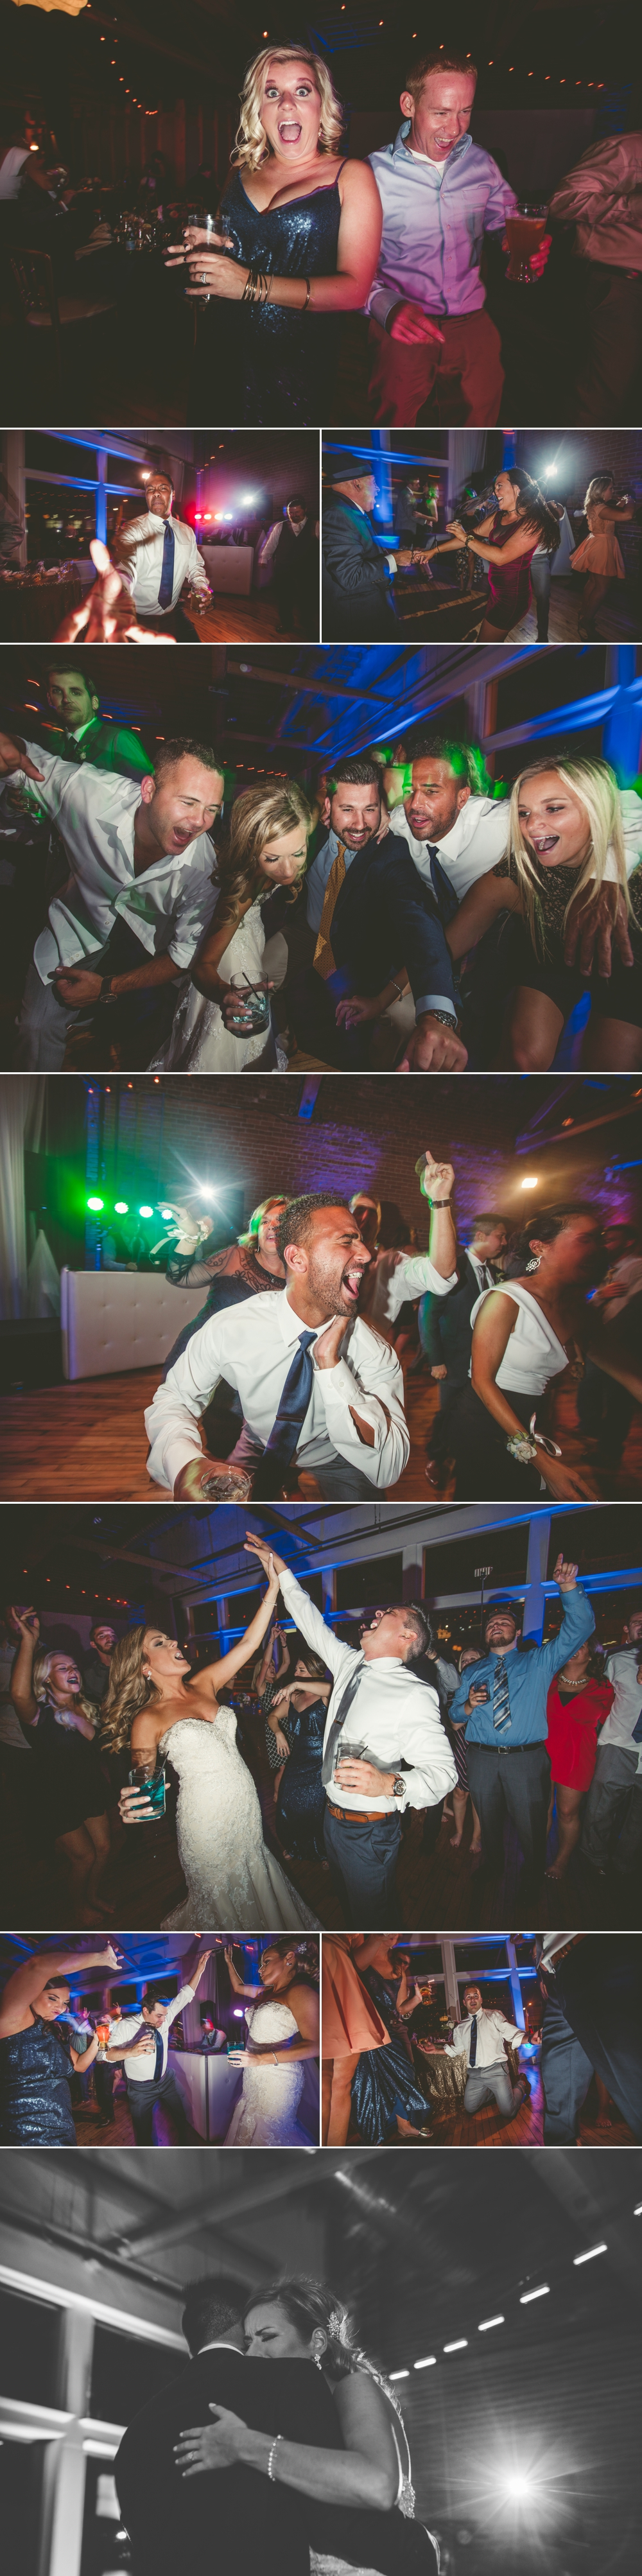 jason_domingues_photography_best_kansas_city_wedding_photographer_kc_weddings_berg0004